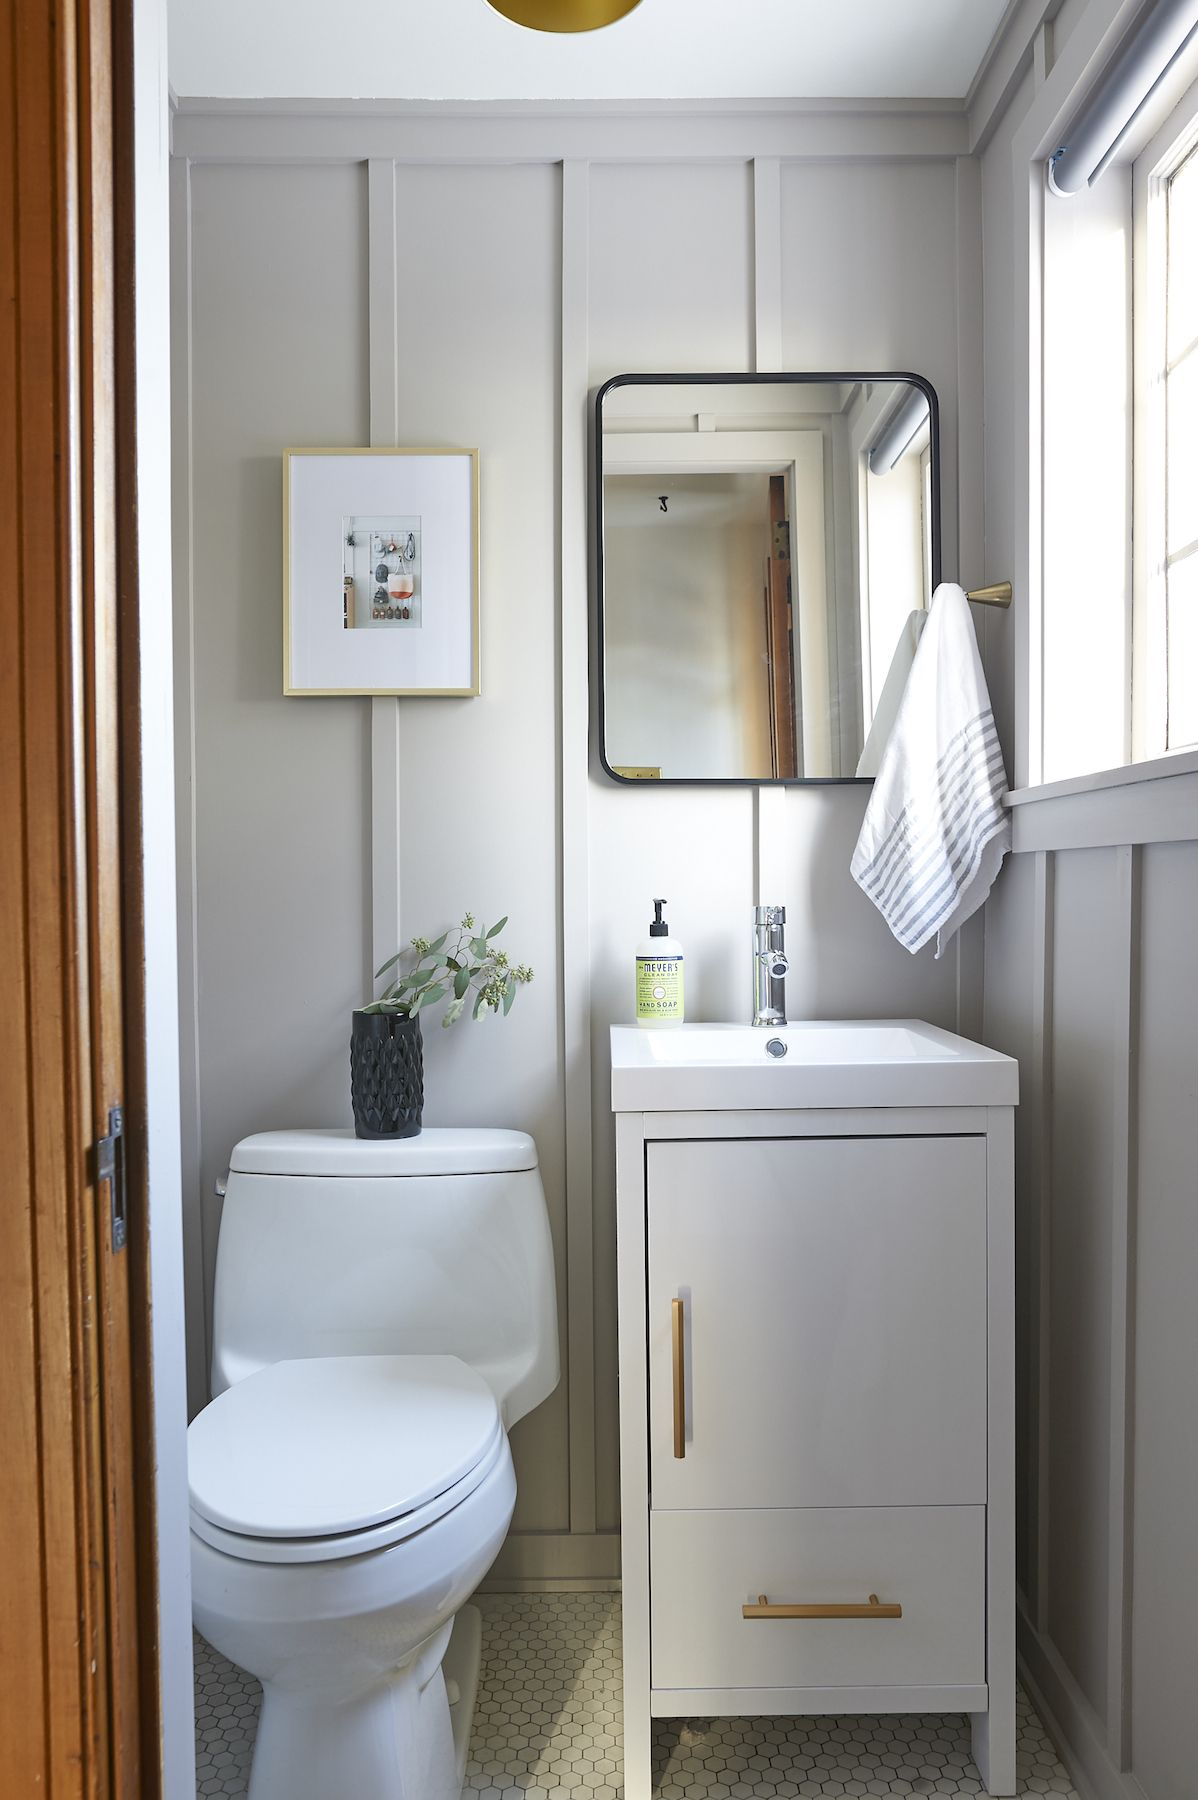 7 Paint Color Trends We Ll See In 2020 Hello Lovely In 2020 Small Bathroom Tiny Bathrooms Powder Room Small